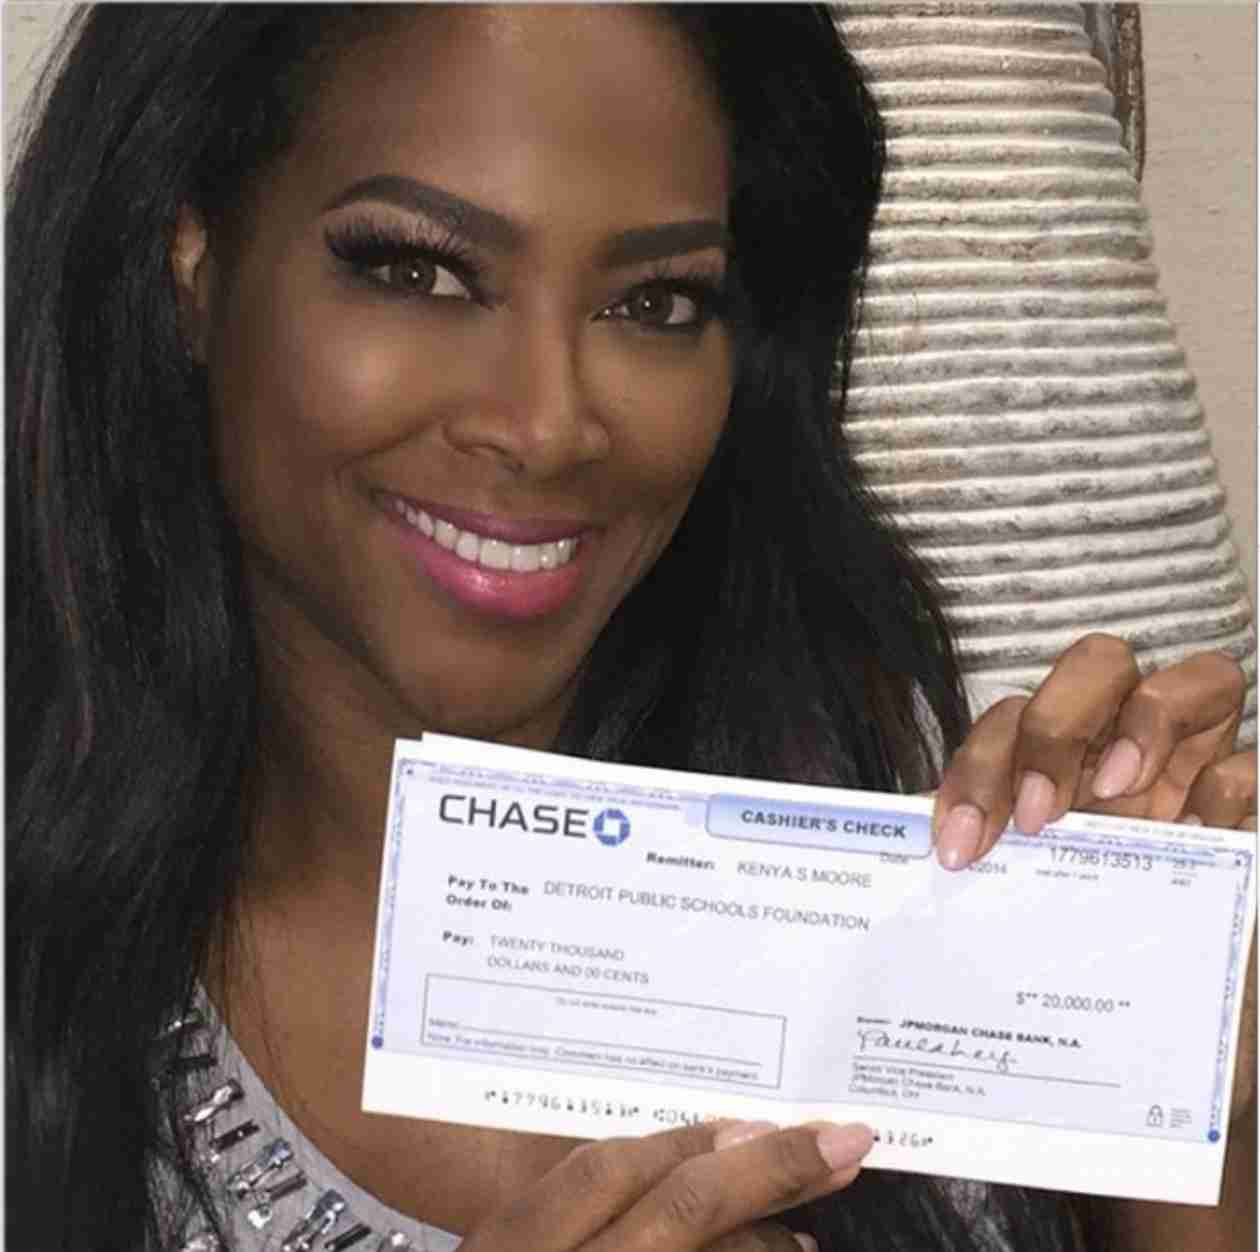 Kenya Moore Proves She Donated to Detroit Public Schools With $20K Check (PHOTO)